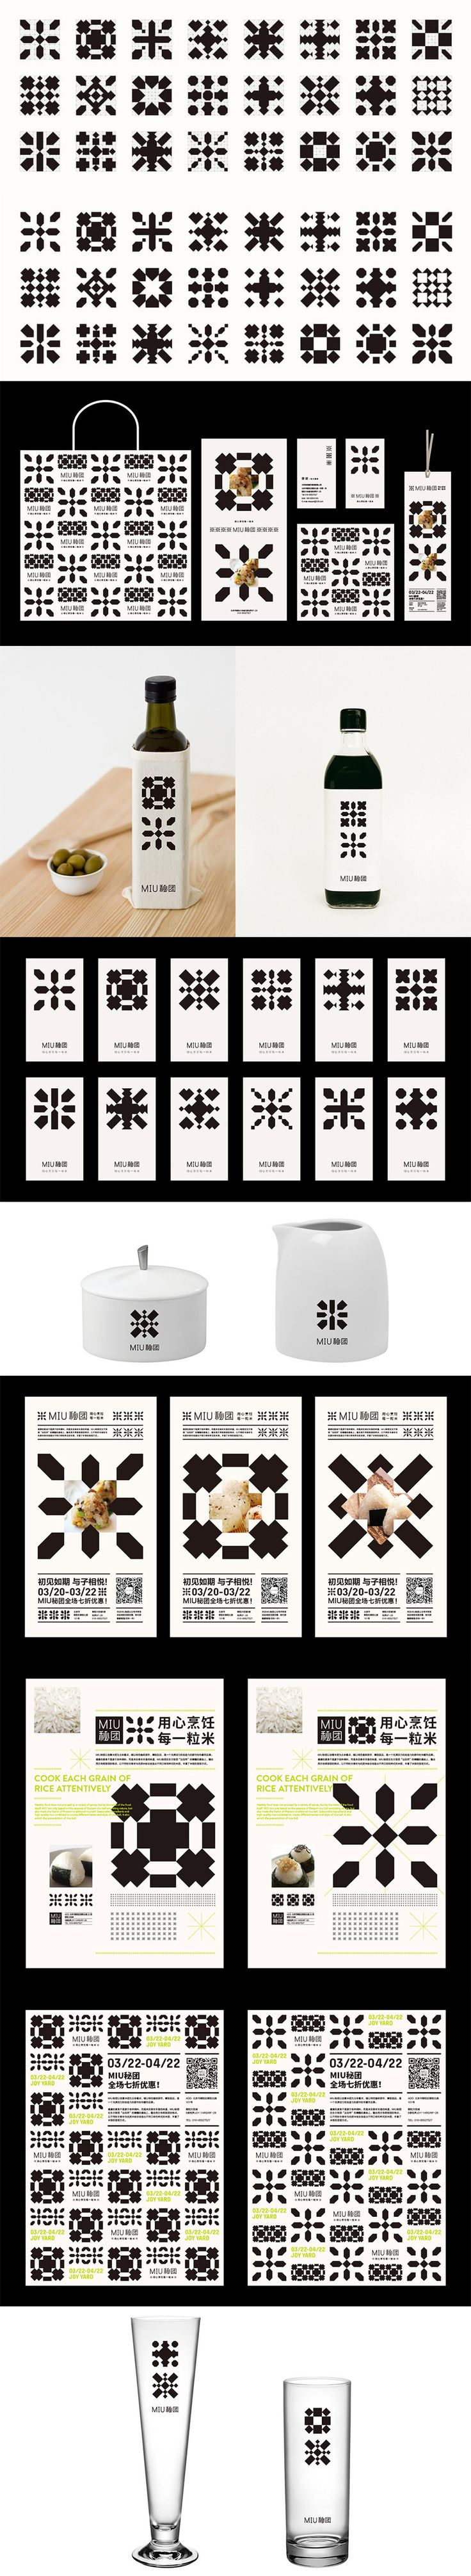 MIU premium rice packaging